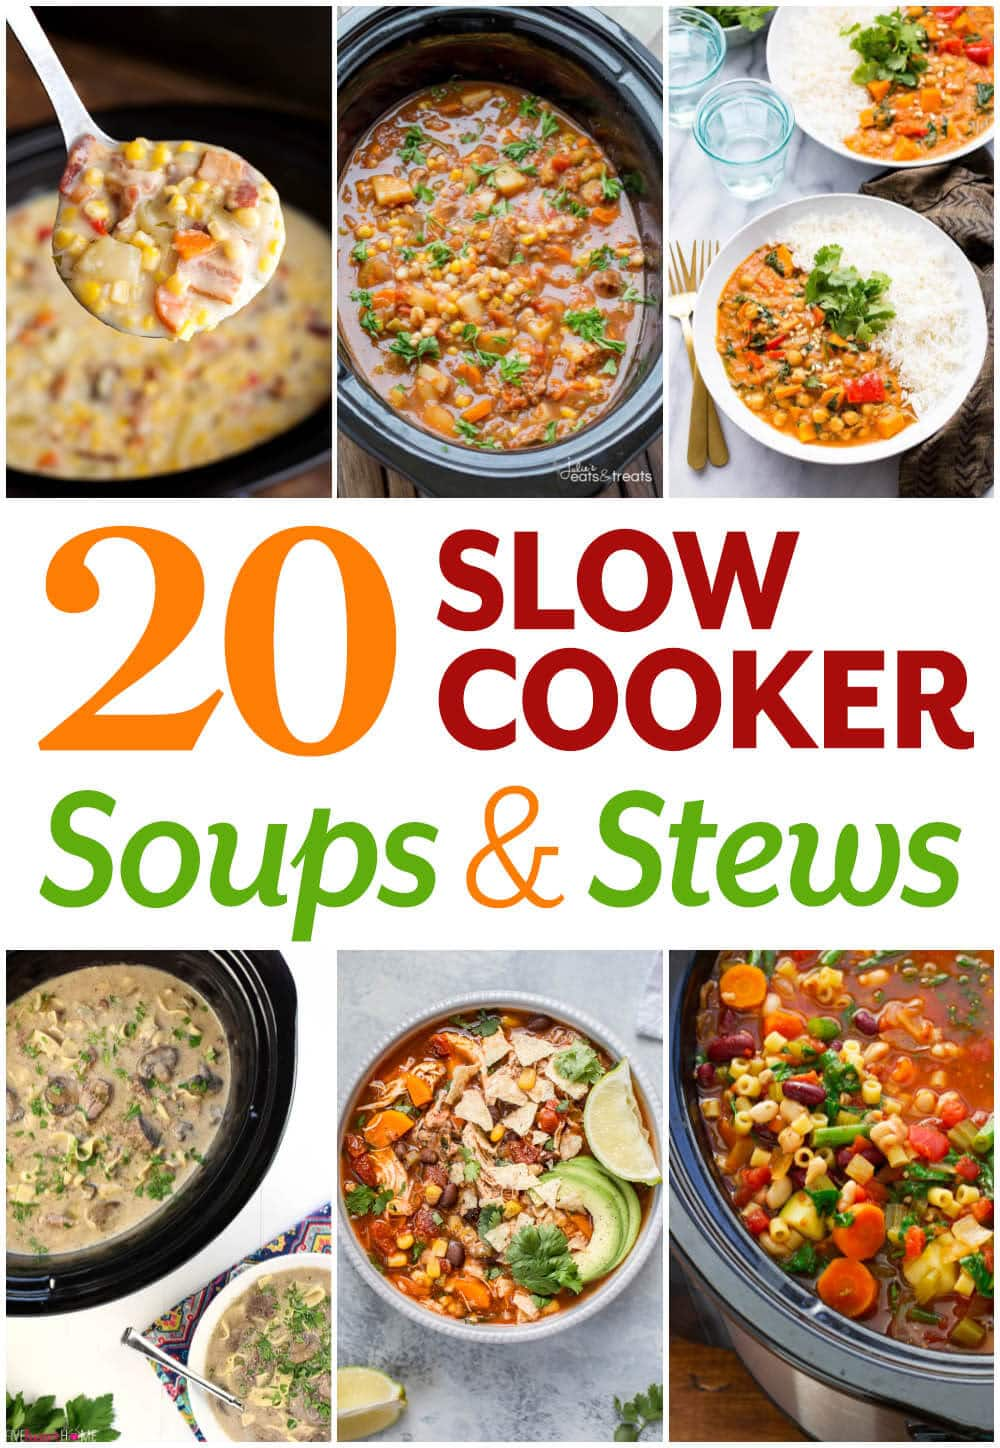 20 Slow Cooker Soup and Stew recipes